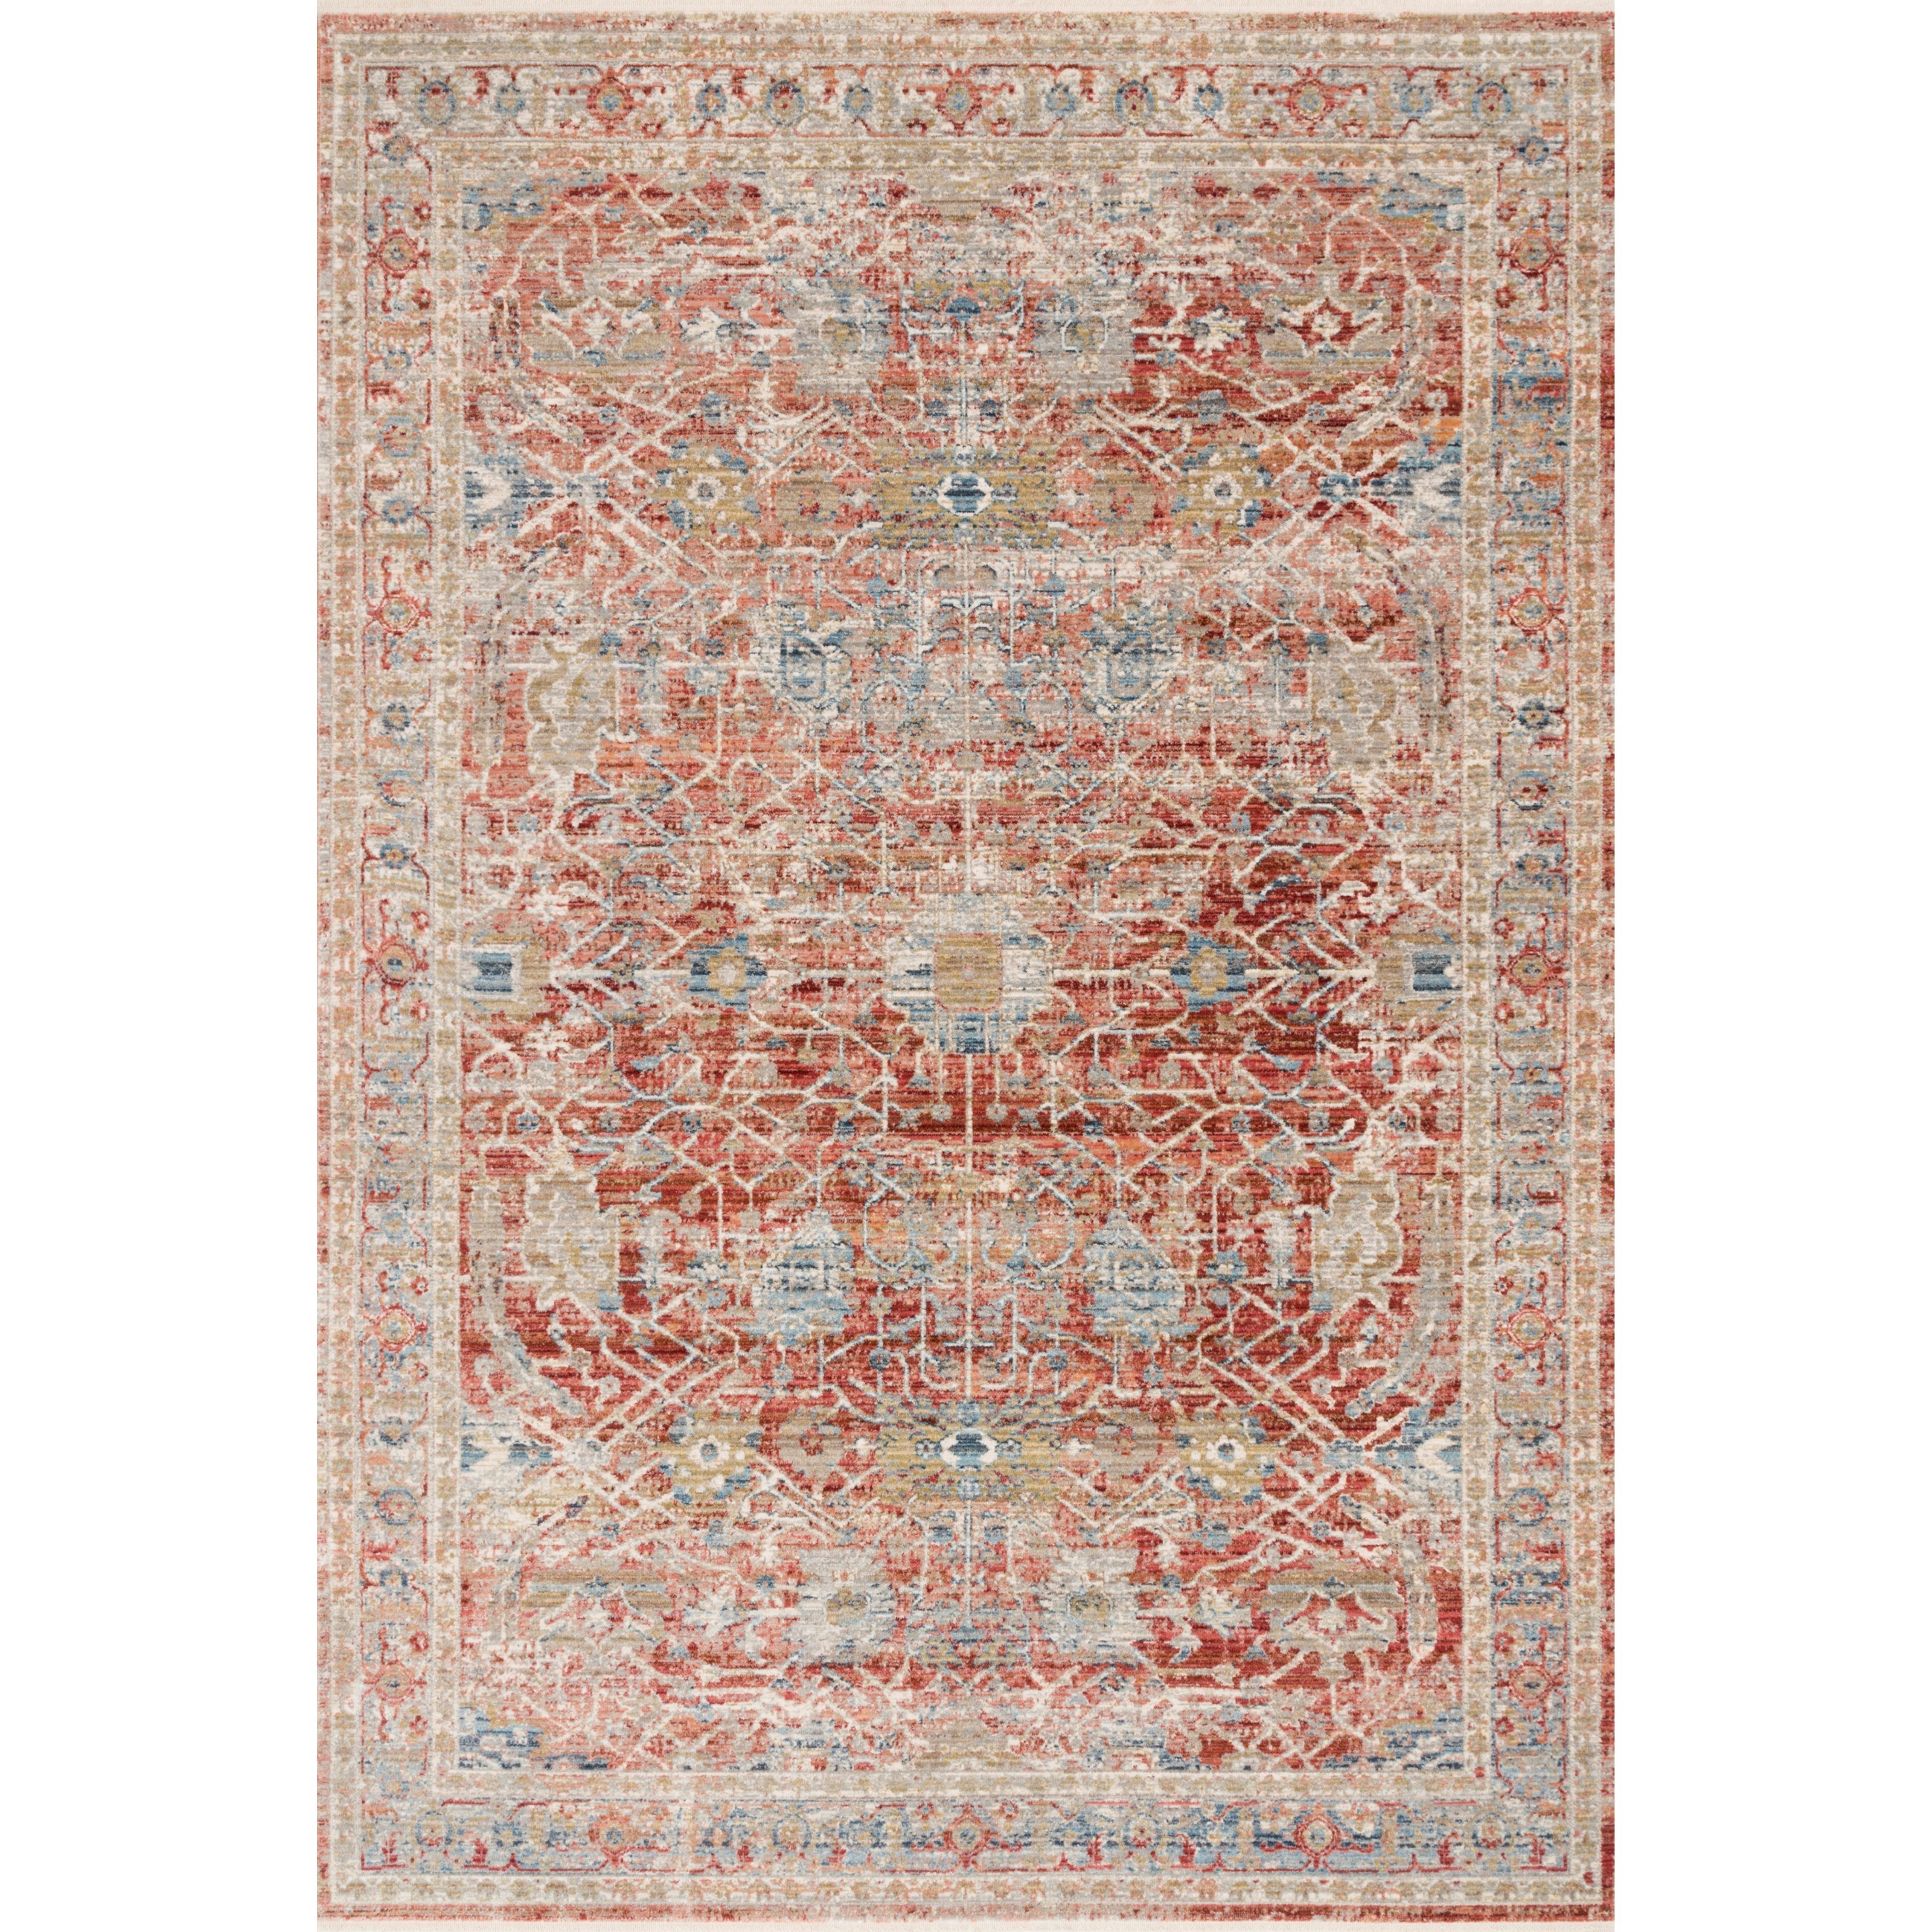 """Claire 11'6"""" x 15'7"""" Red / Ivory Rug by Loloi Rugs at Virginia Furniture Market"""